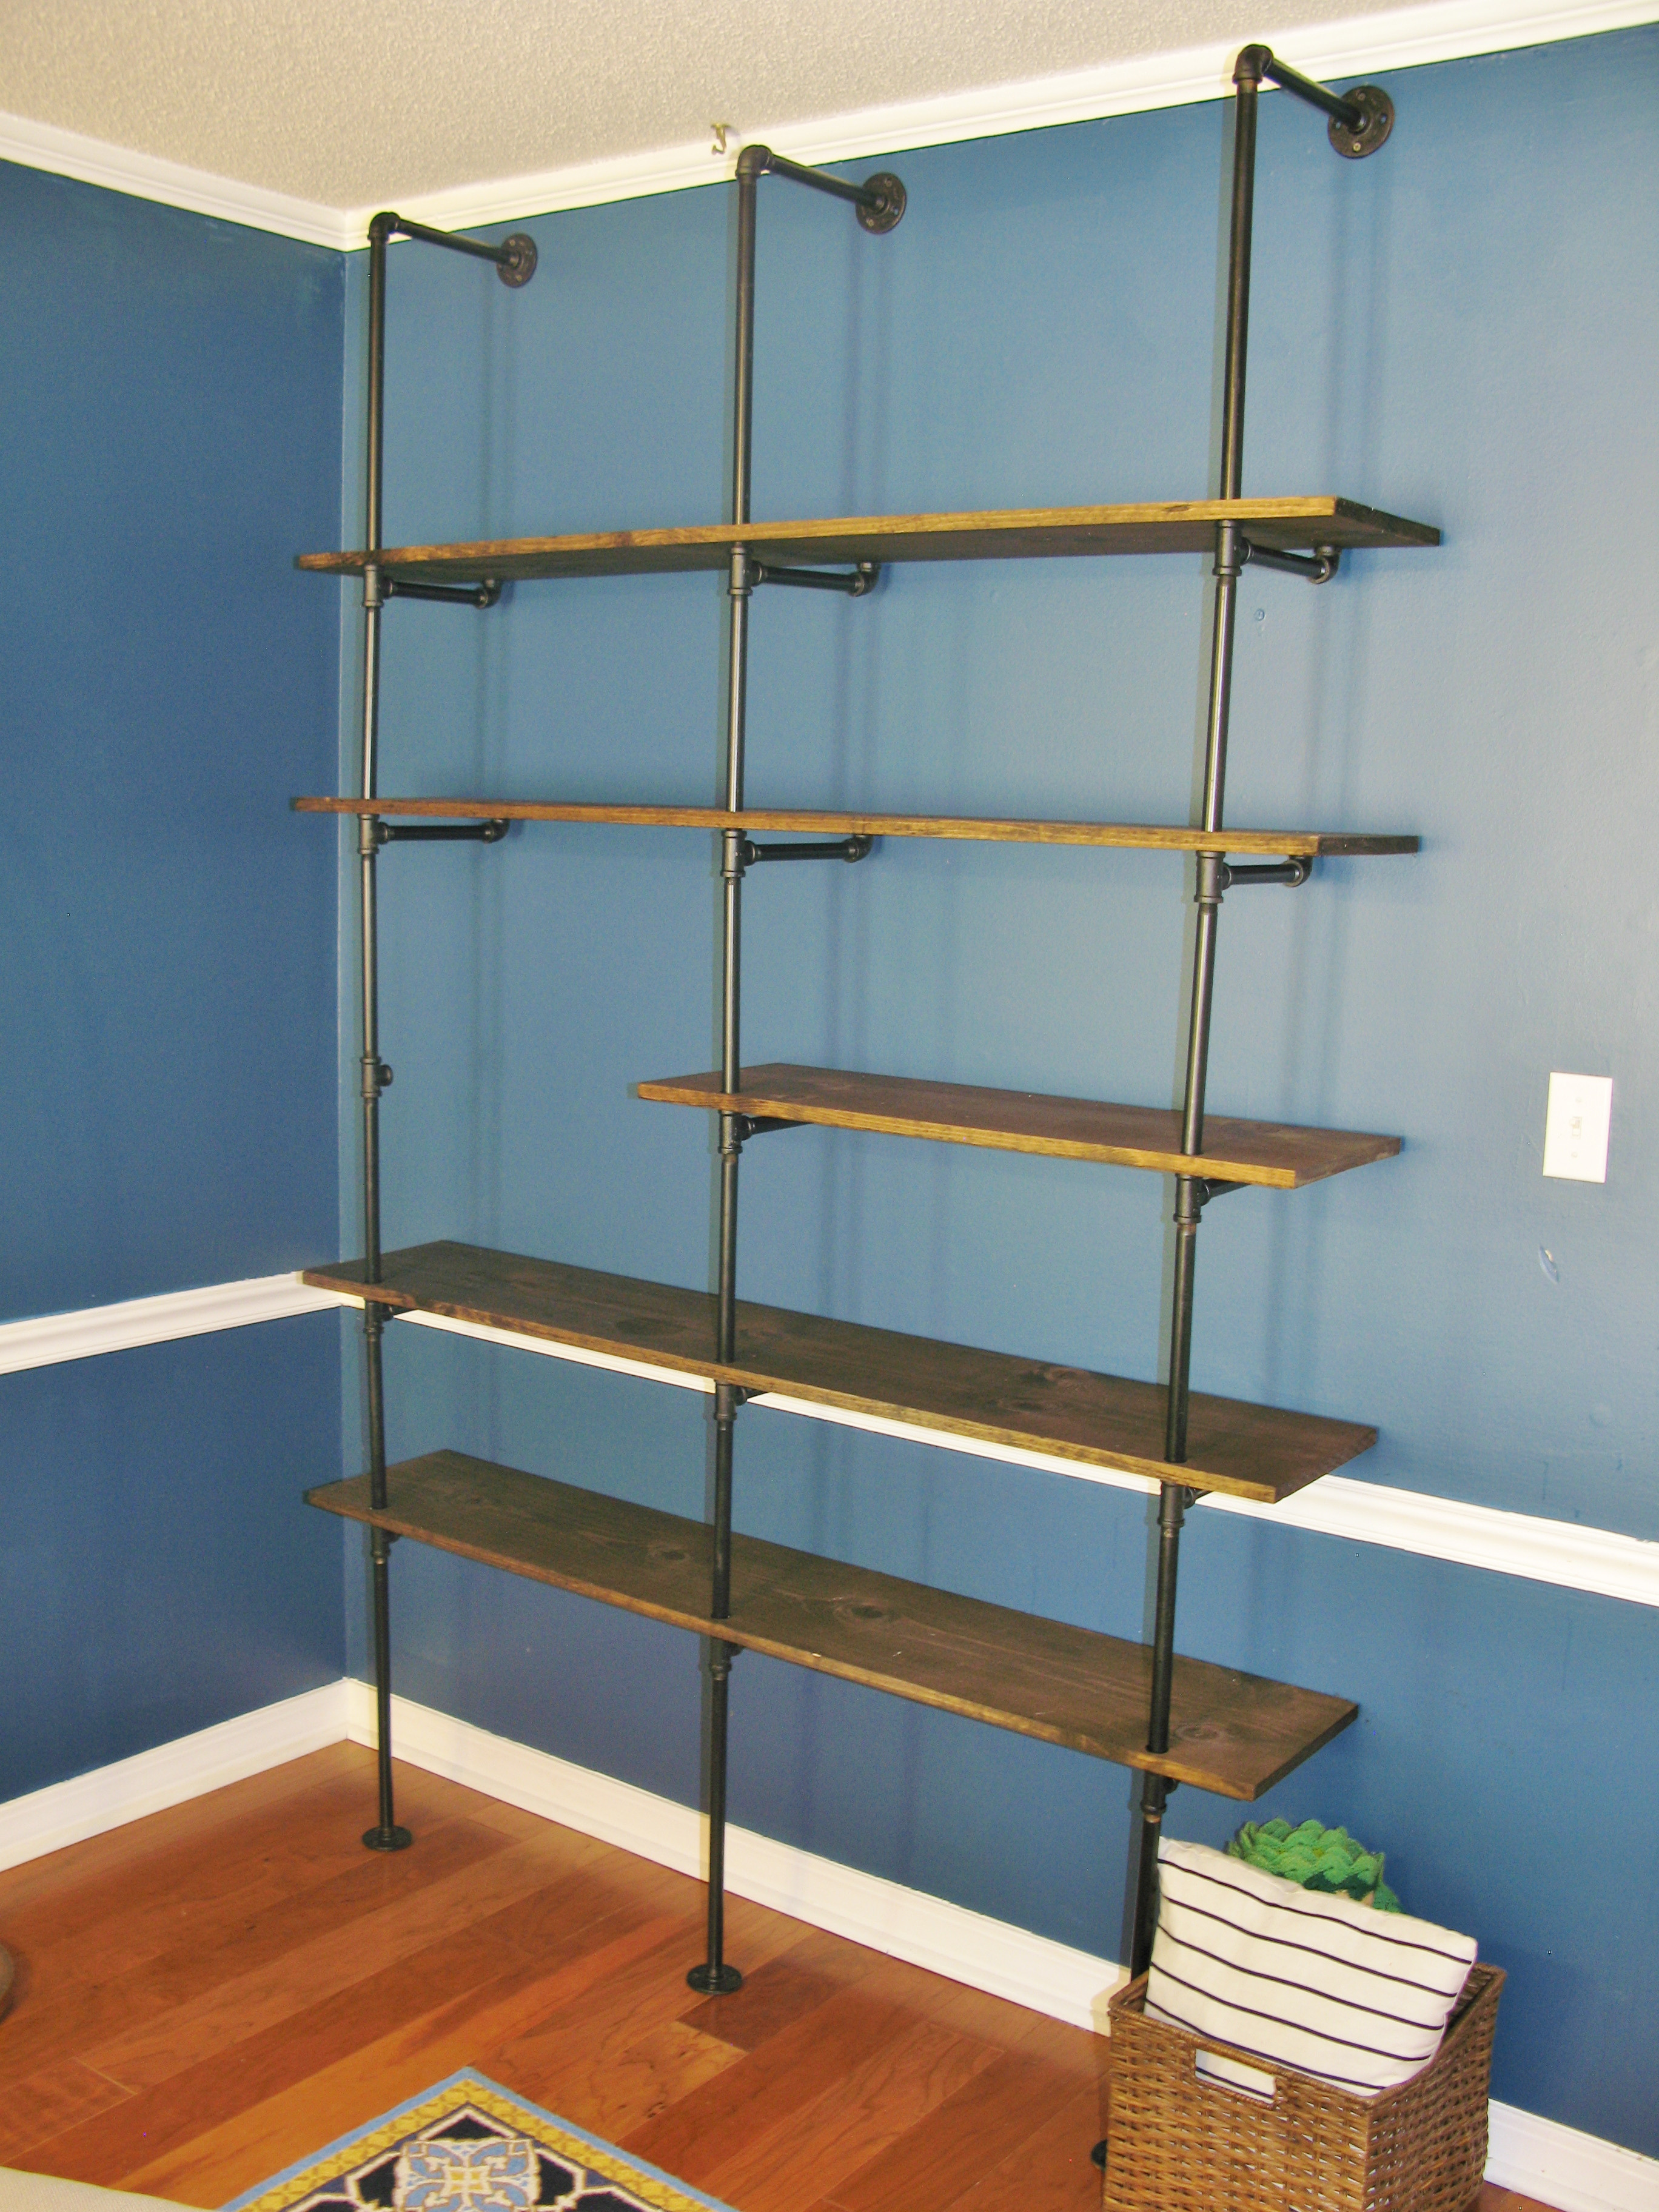 Best ideas about Industrial Pipe Shelving DIY . Save or Pin DIY Industrial Pipe Bookshelf Now.